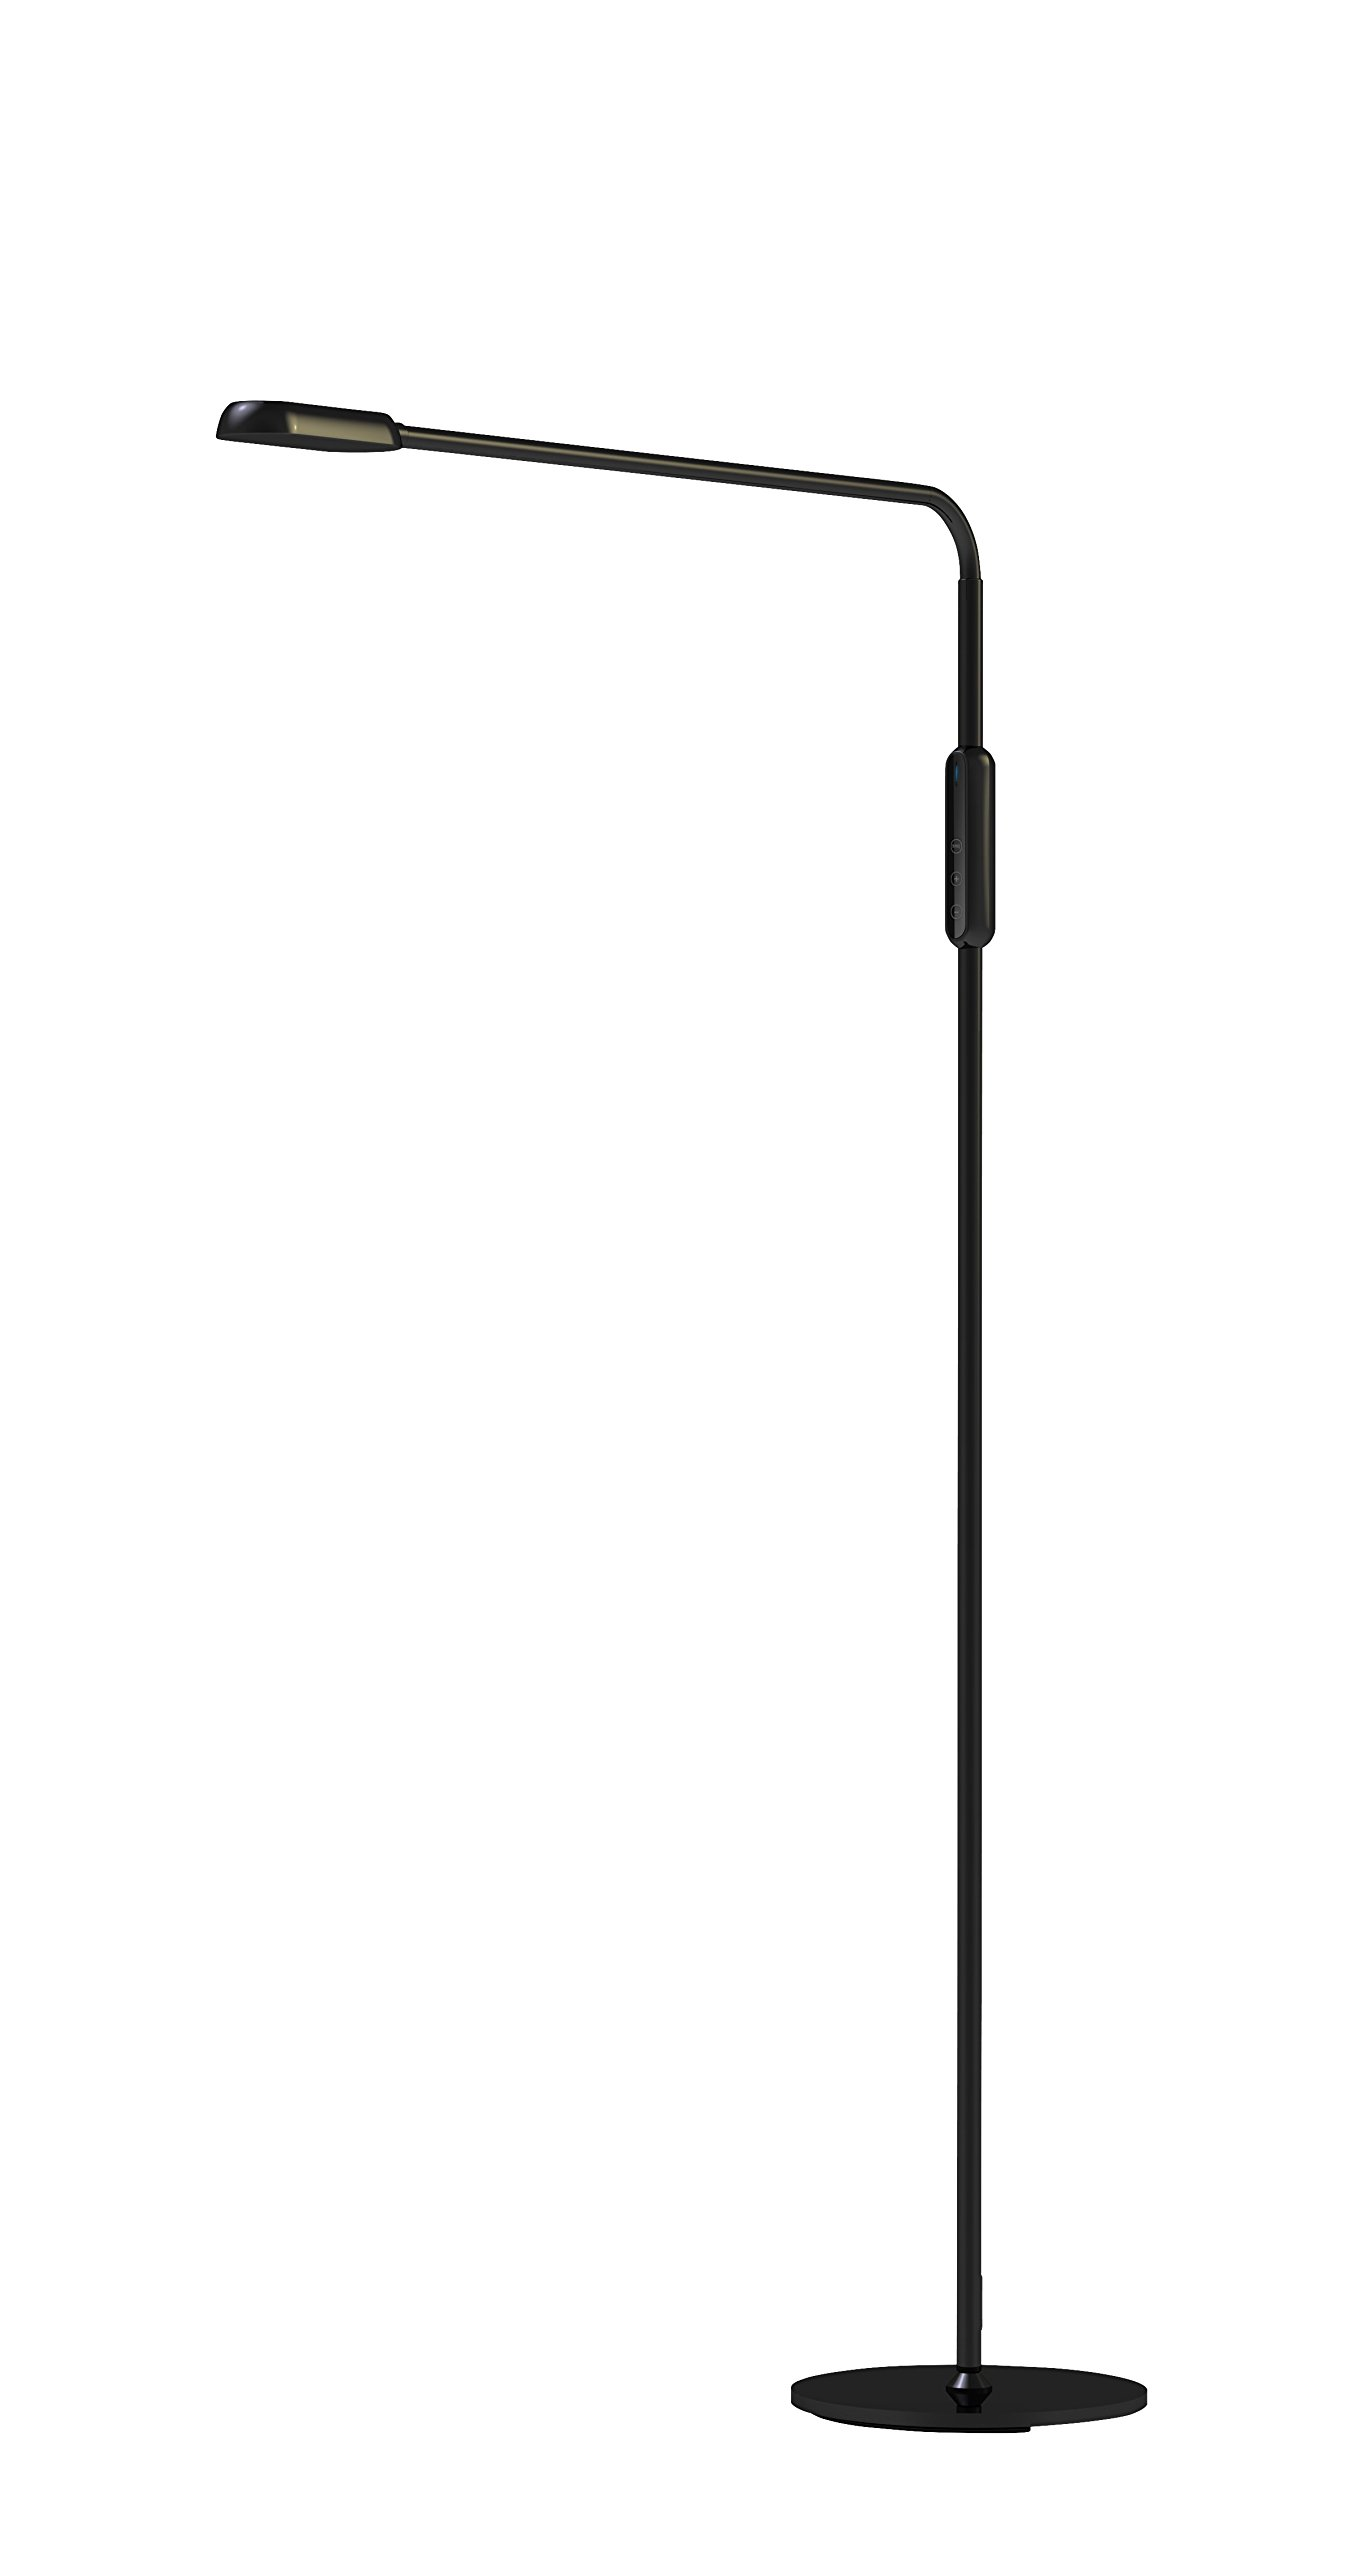 Cnlight Touch LED Gooseneck Mordern Light Standing Craft Floor Lamp with Touch Control, Remote, 5-Level Dimmer, 5 Color Temperatures, 9 Watts for Living Room, Bedroom, Reading Room, Office.(Black)